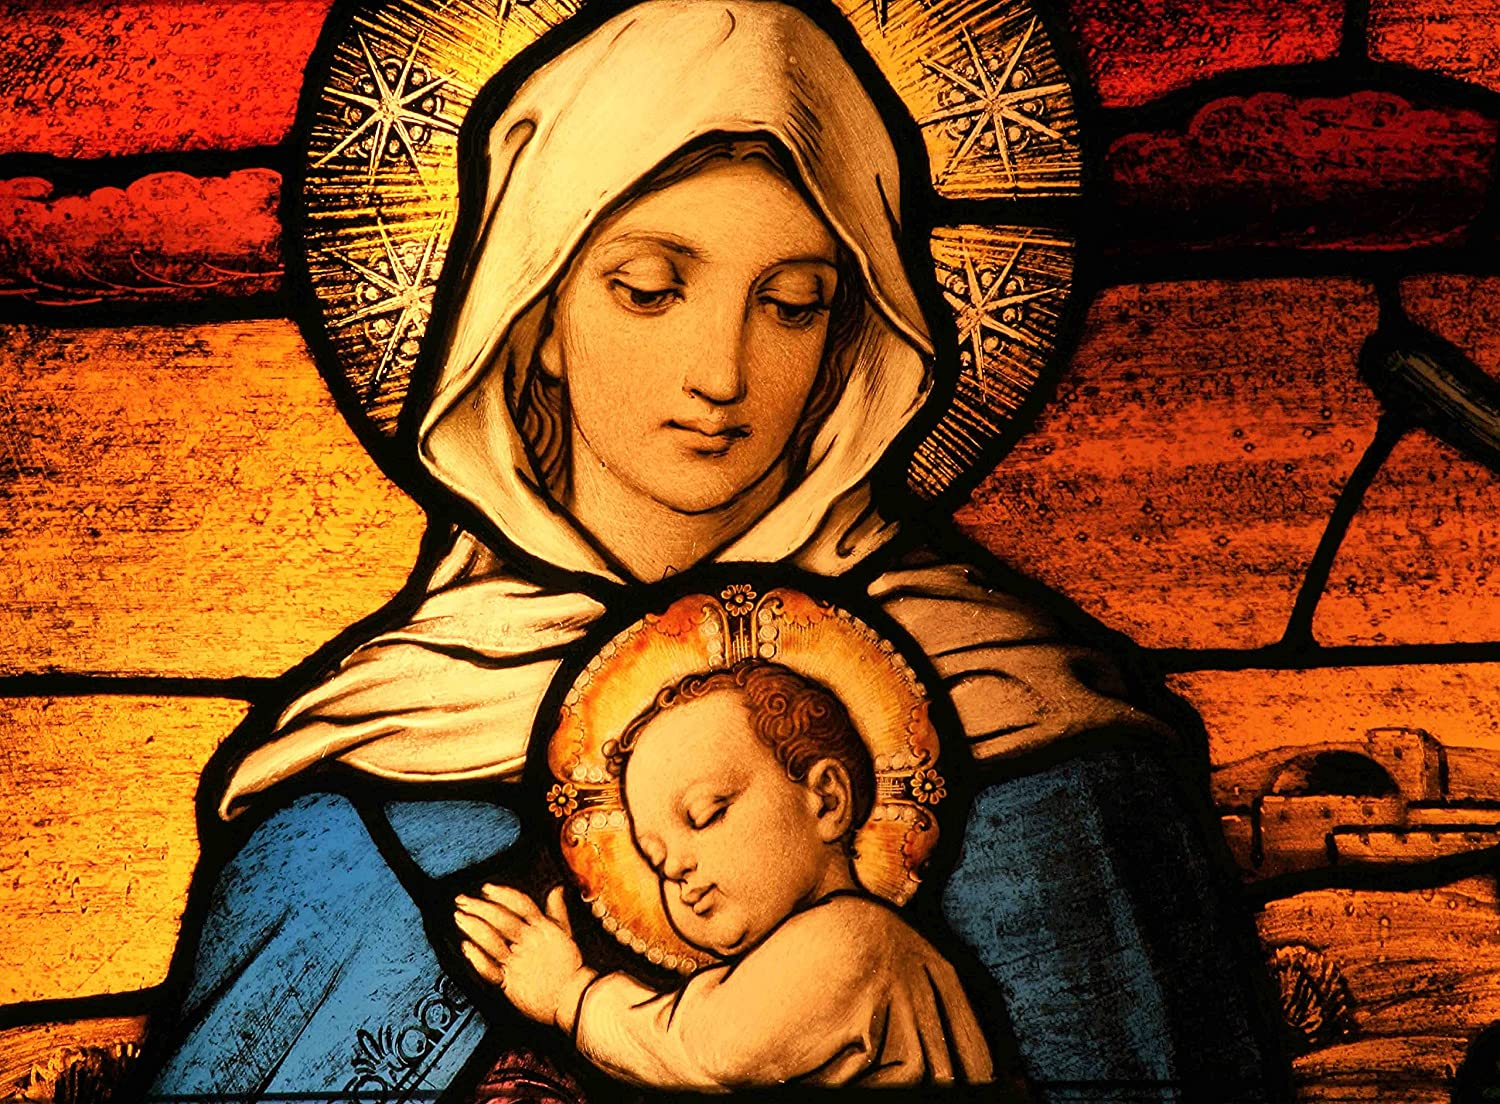 Amazon.com: FKG Adult Jigsaw Puzzle Baby Jesus And Virgin Mother Mary  500-Pieces: Toys & Games